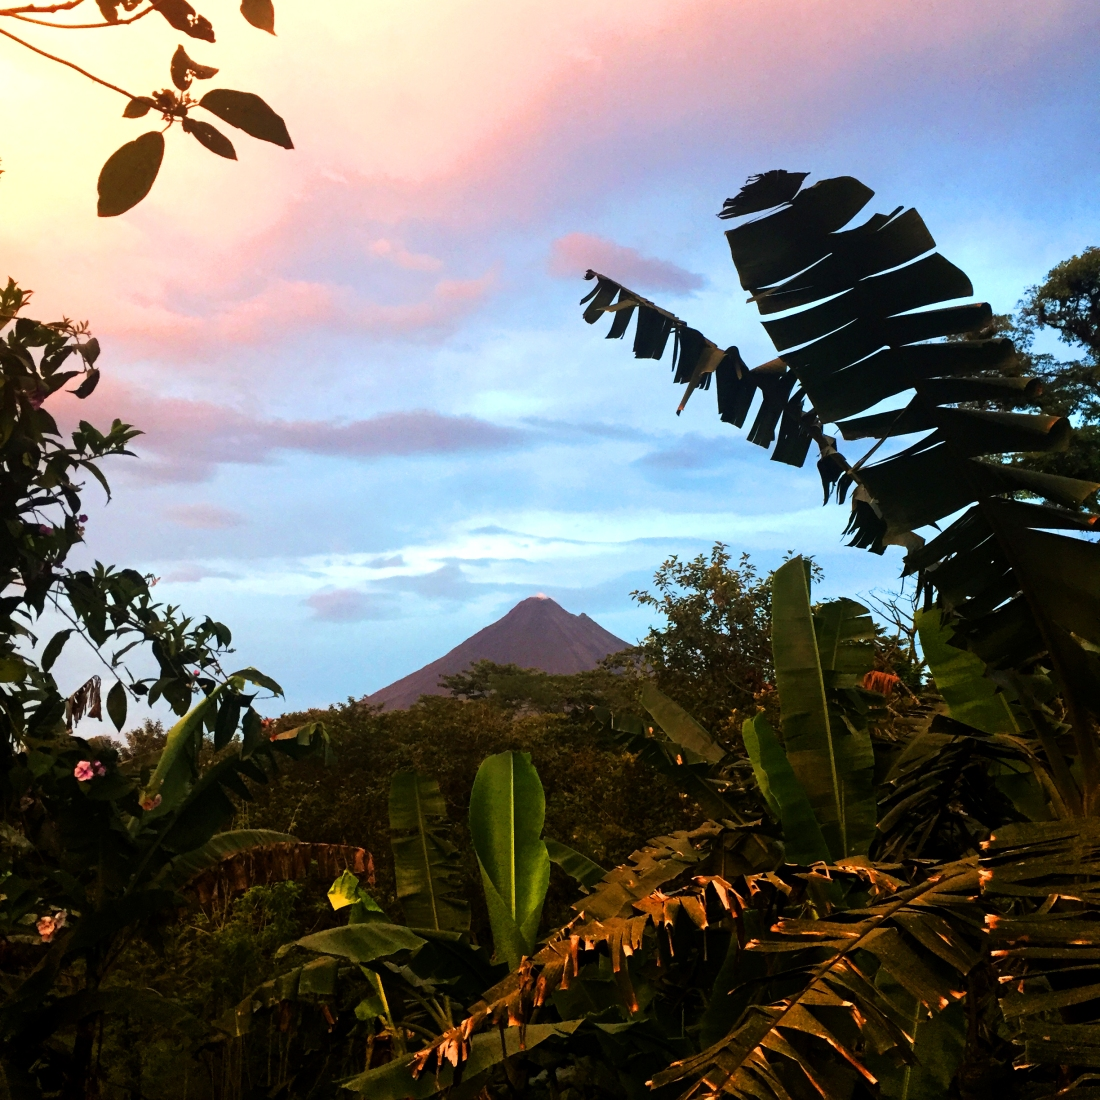 volcano and pink sky.jpg